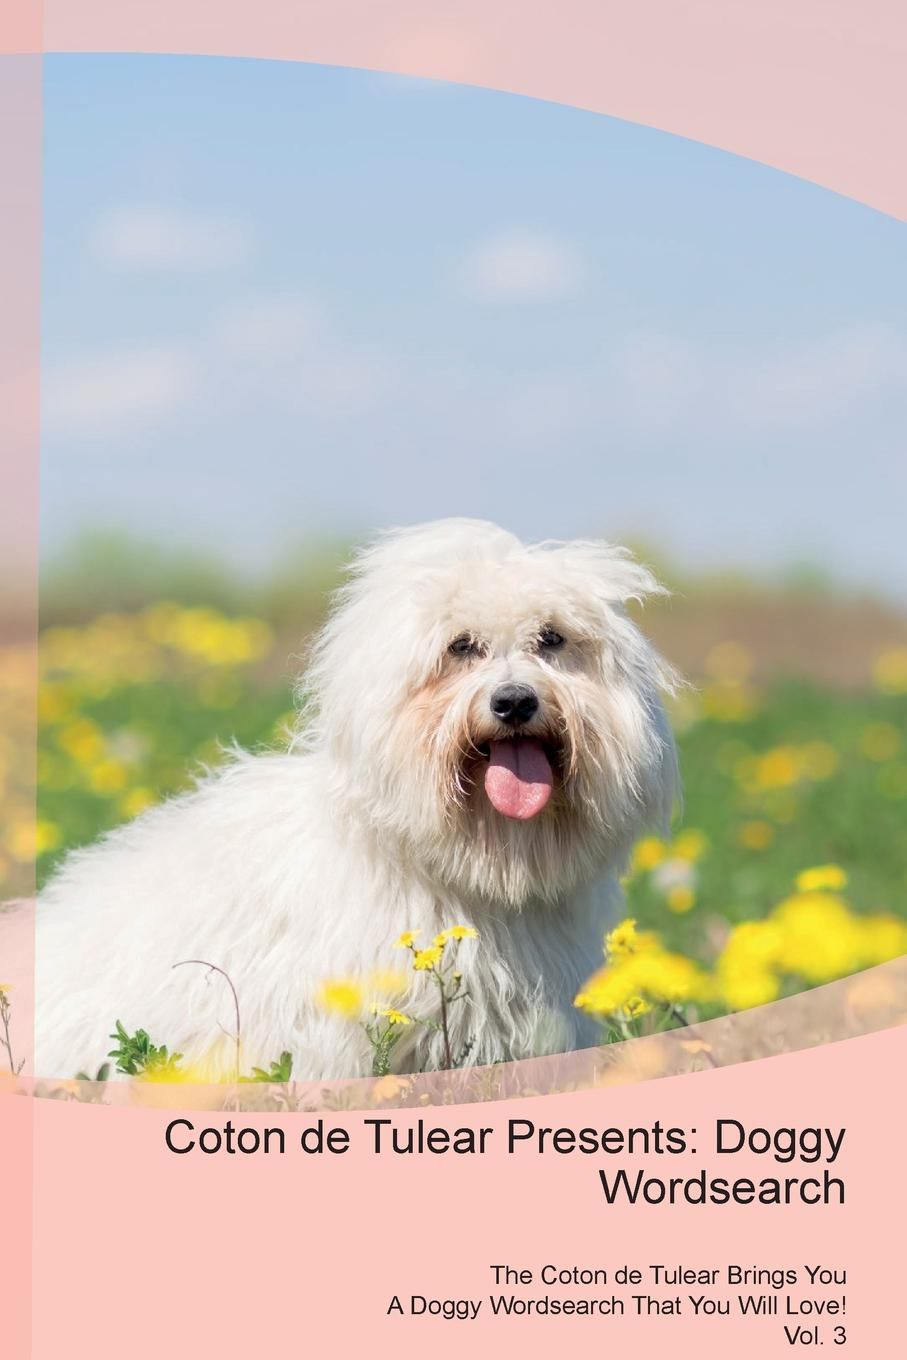 Doggy Puzzles Coton de Tulear Presents. Wordsearch The Brings You A That Will Love! Vol. 3